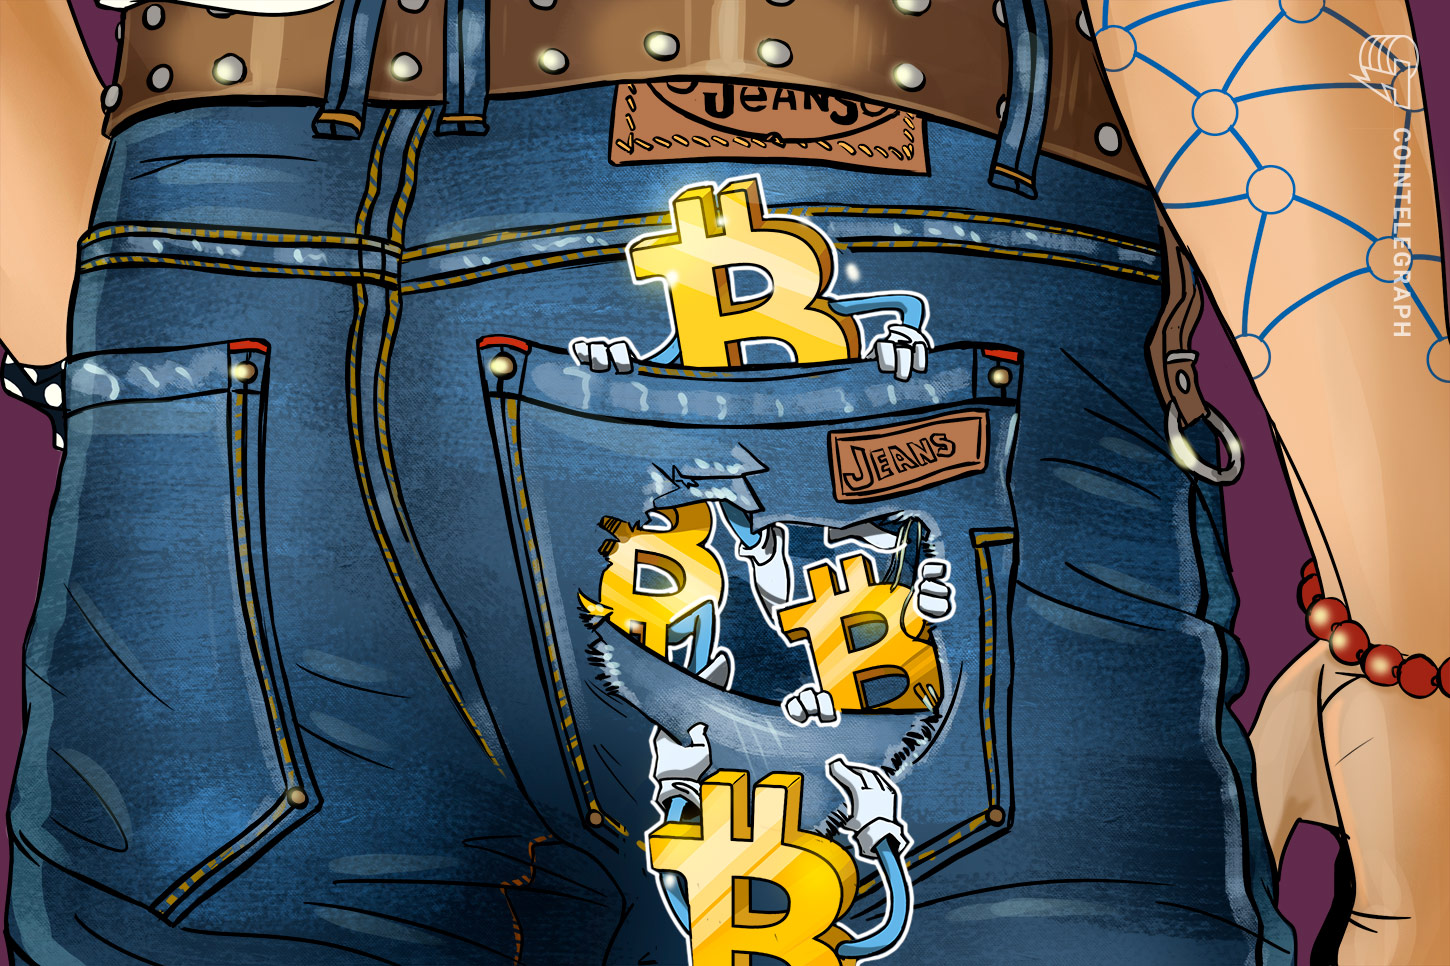 Recent Data Hack Could Put Millions of Dollars in Bitcoin at Risk